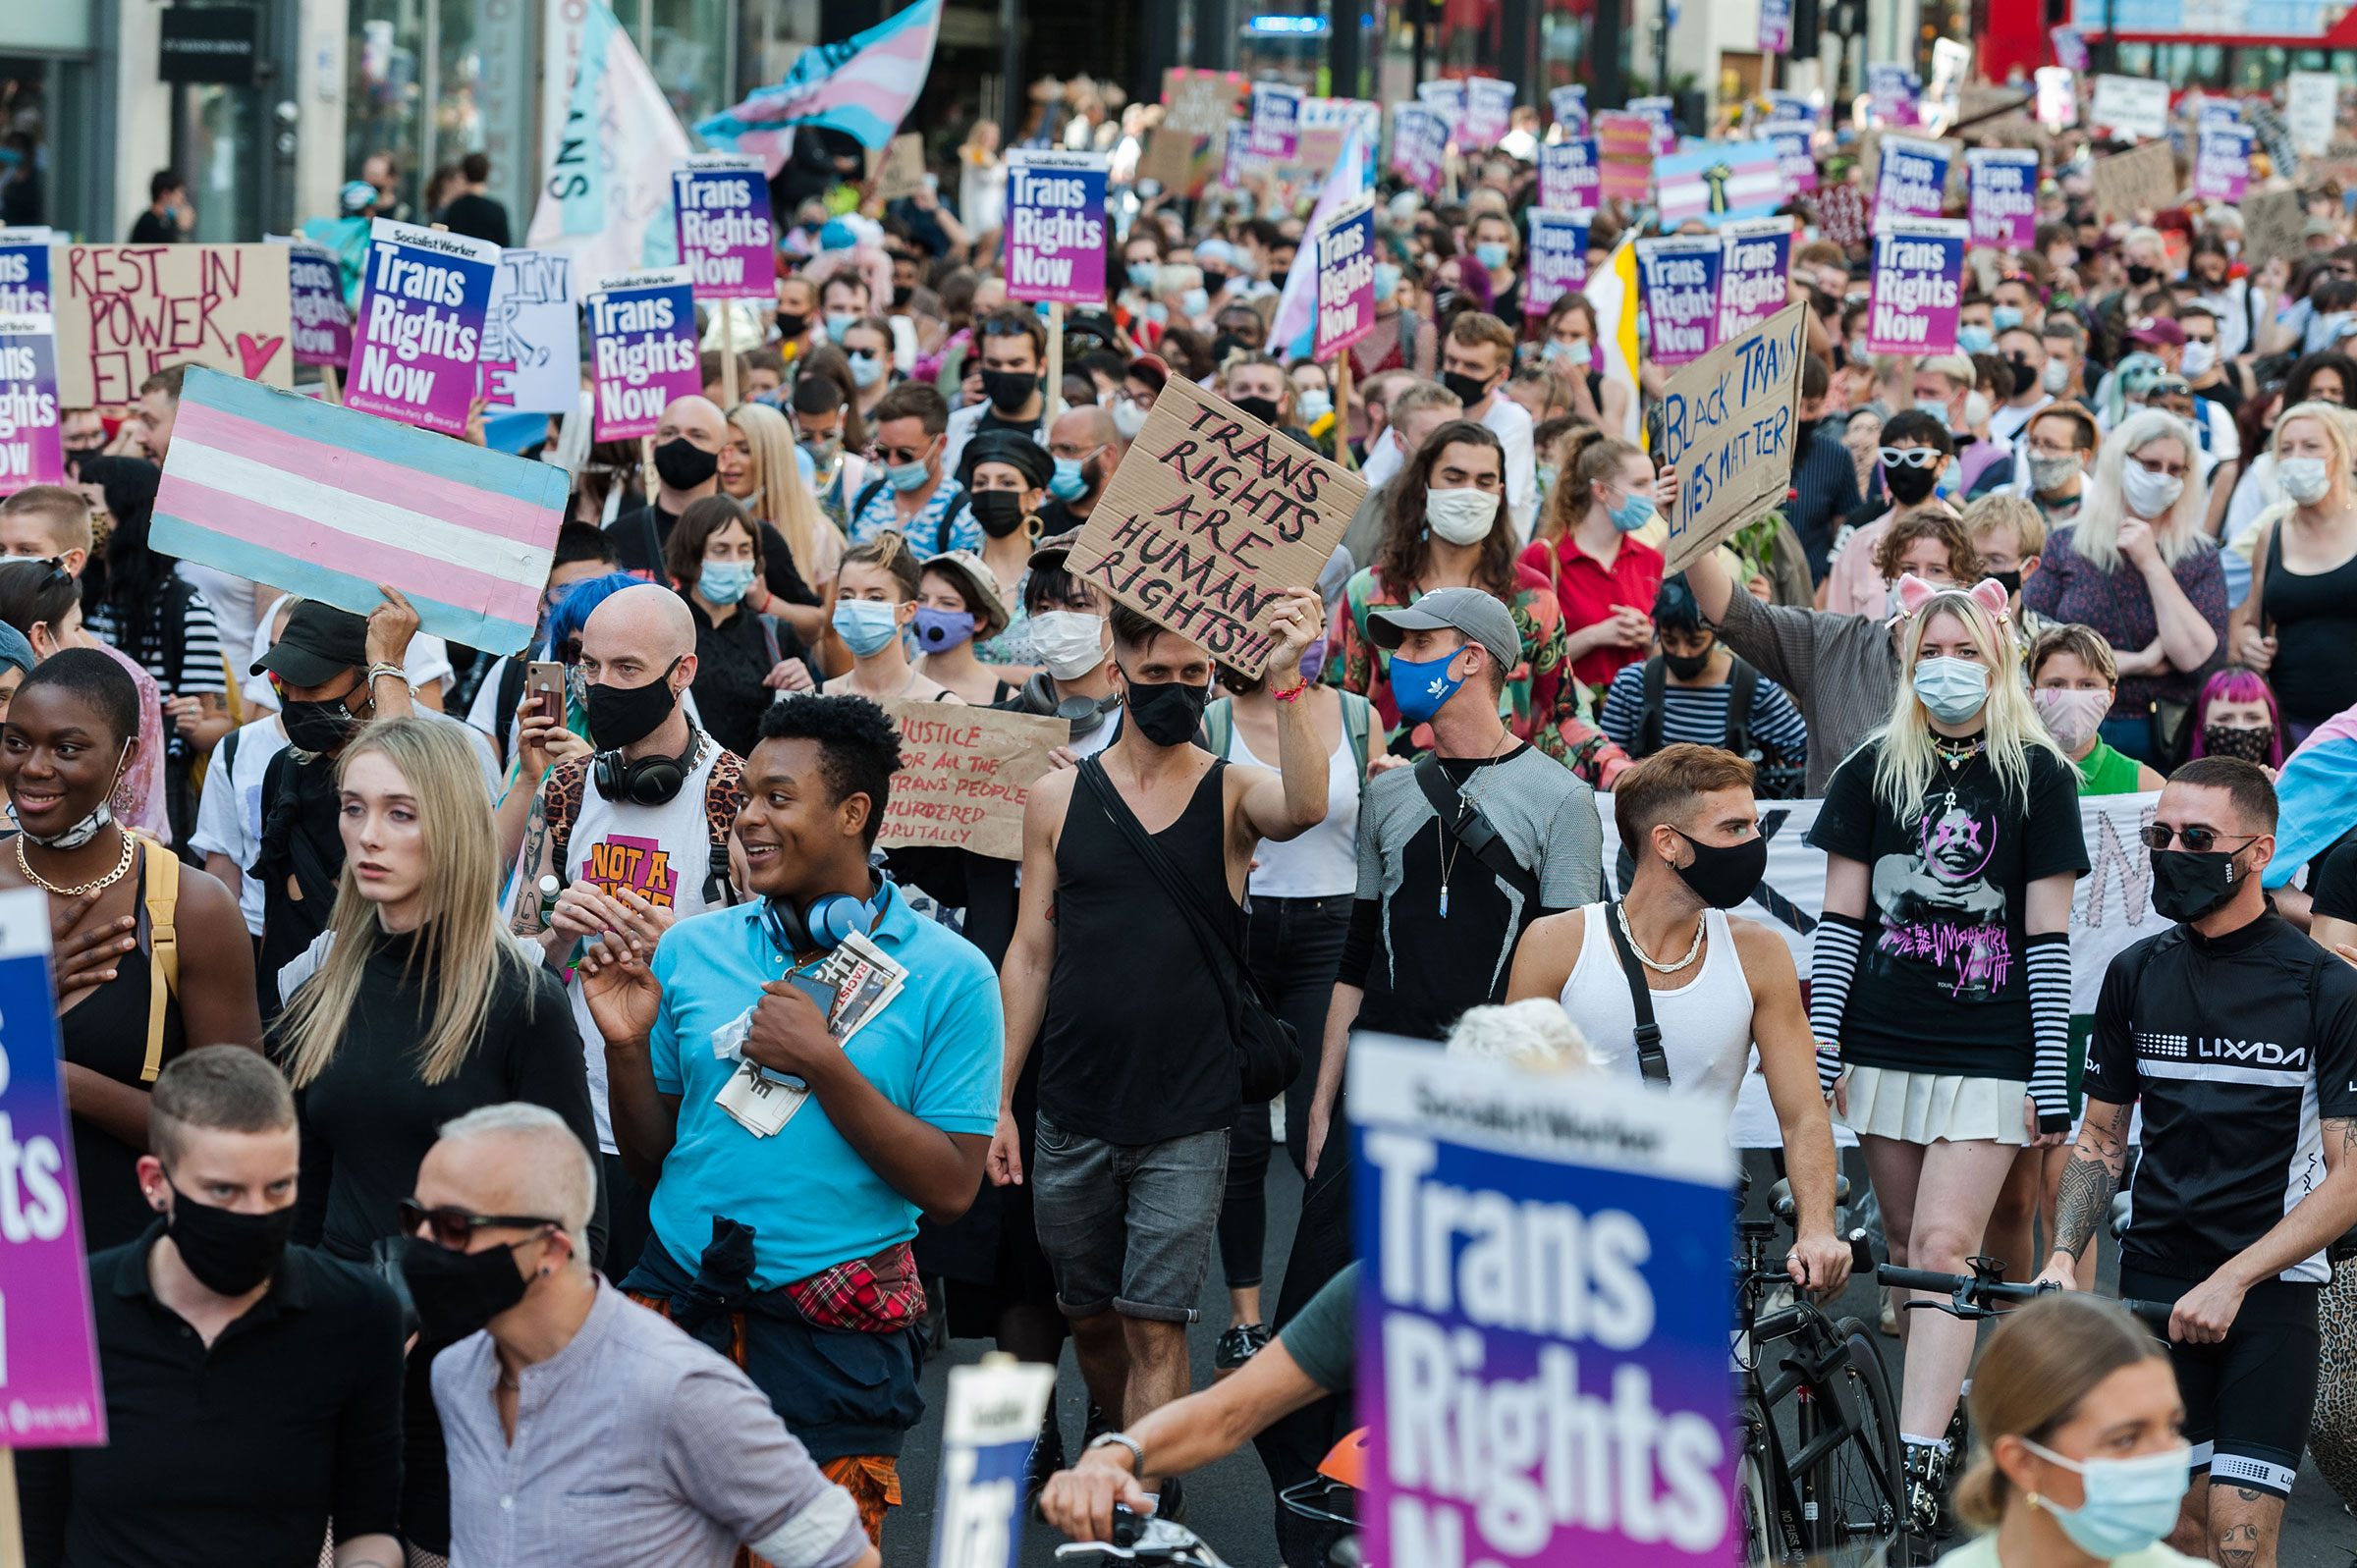 Transgender people and their supporters march through central London during the second Trans Pride protest march for equality on Sept. 12, 2020 in London, England.